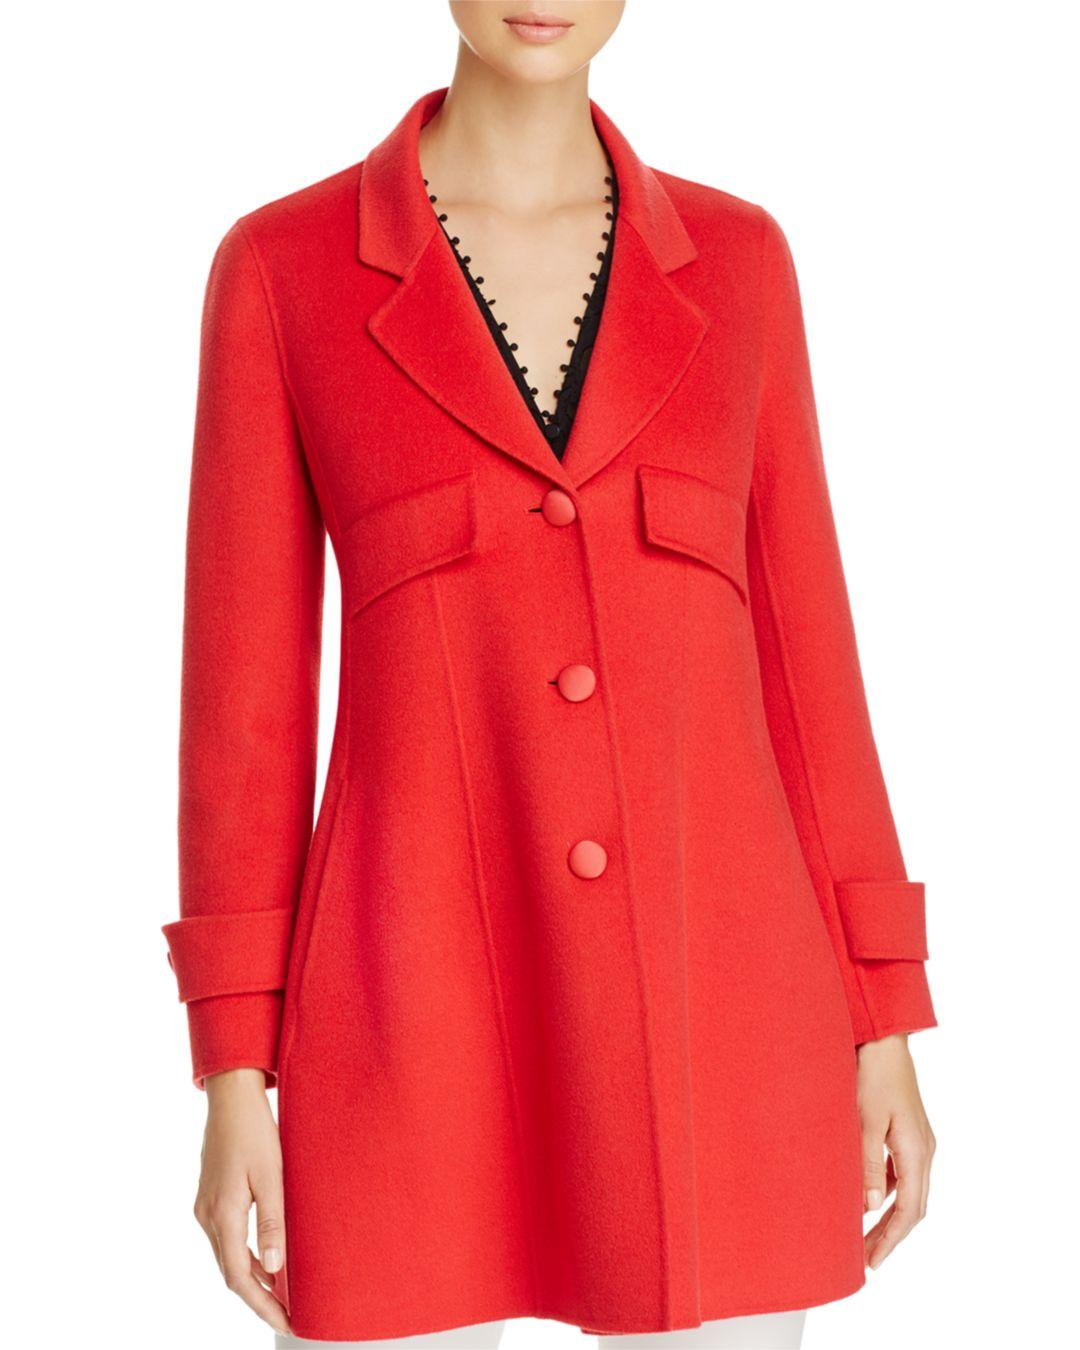 be0fb0d3c8b8d Armani Emporio Fitted Wool   Cashmere Coat in Red - Lyst